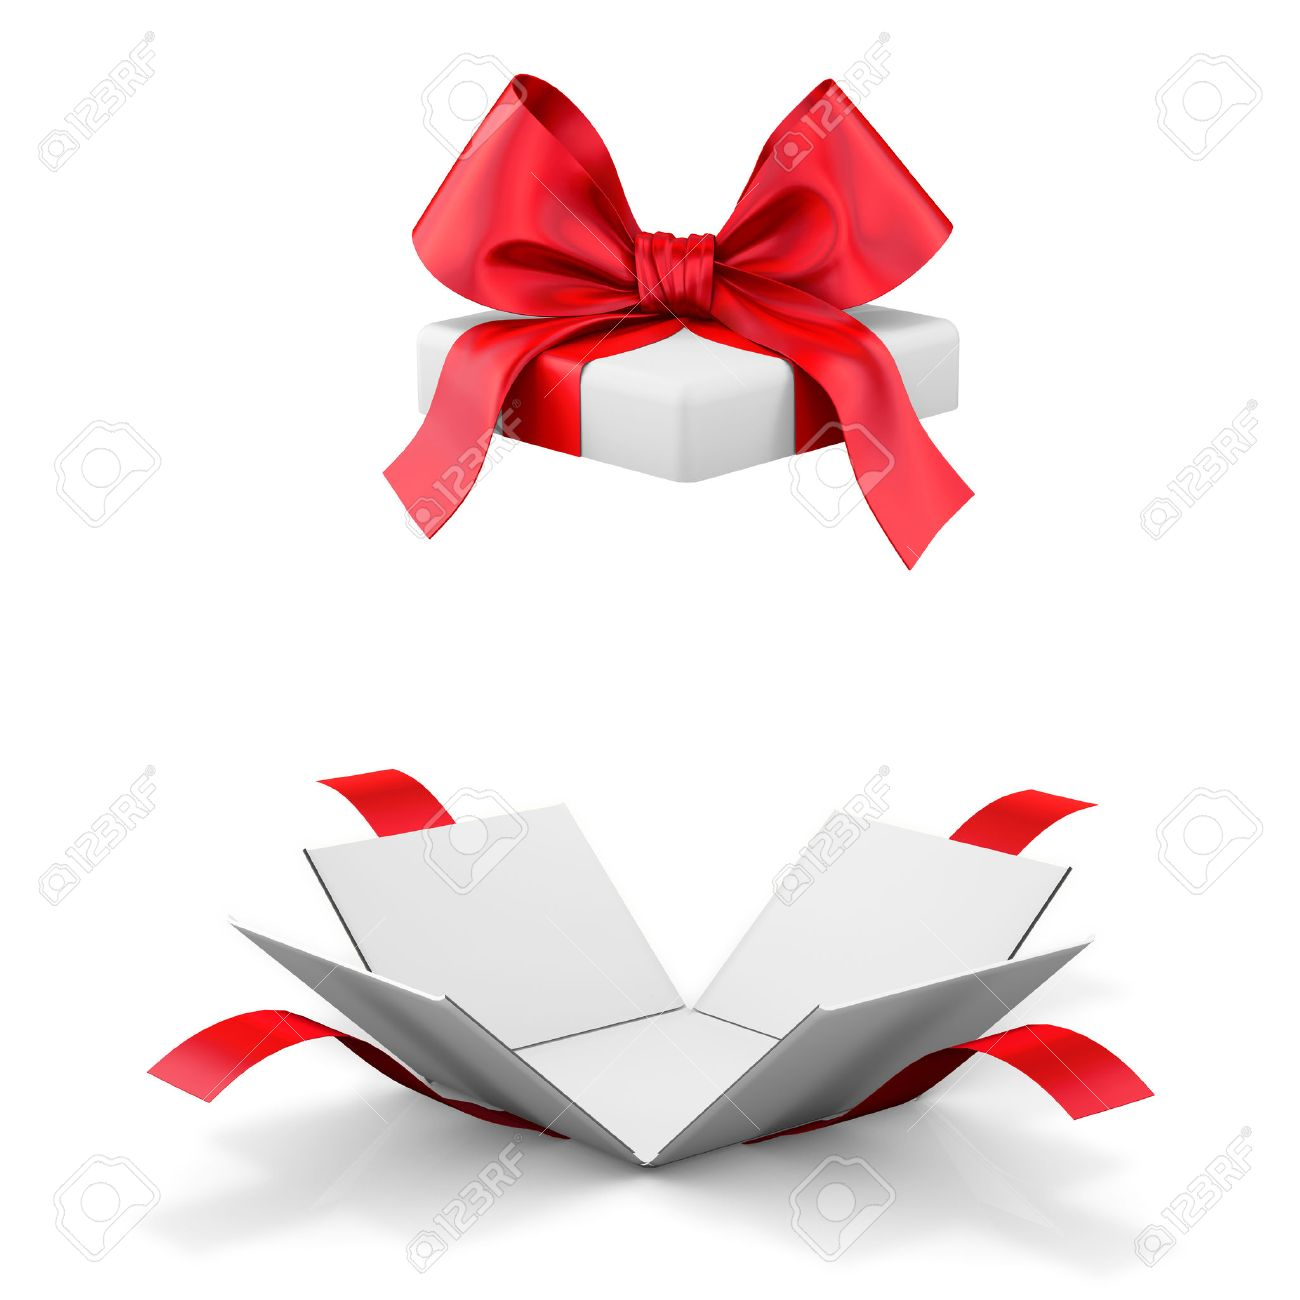 Open gift box over white background 3d illustration stock photo illustration open gift box over white background 3d illustration negle Images